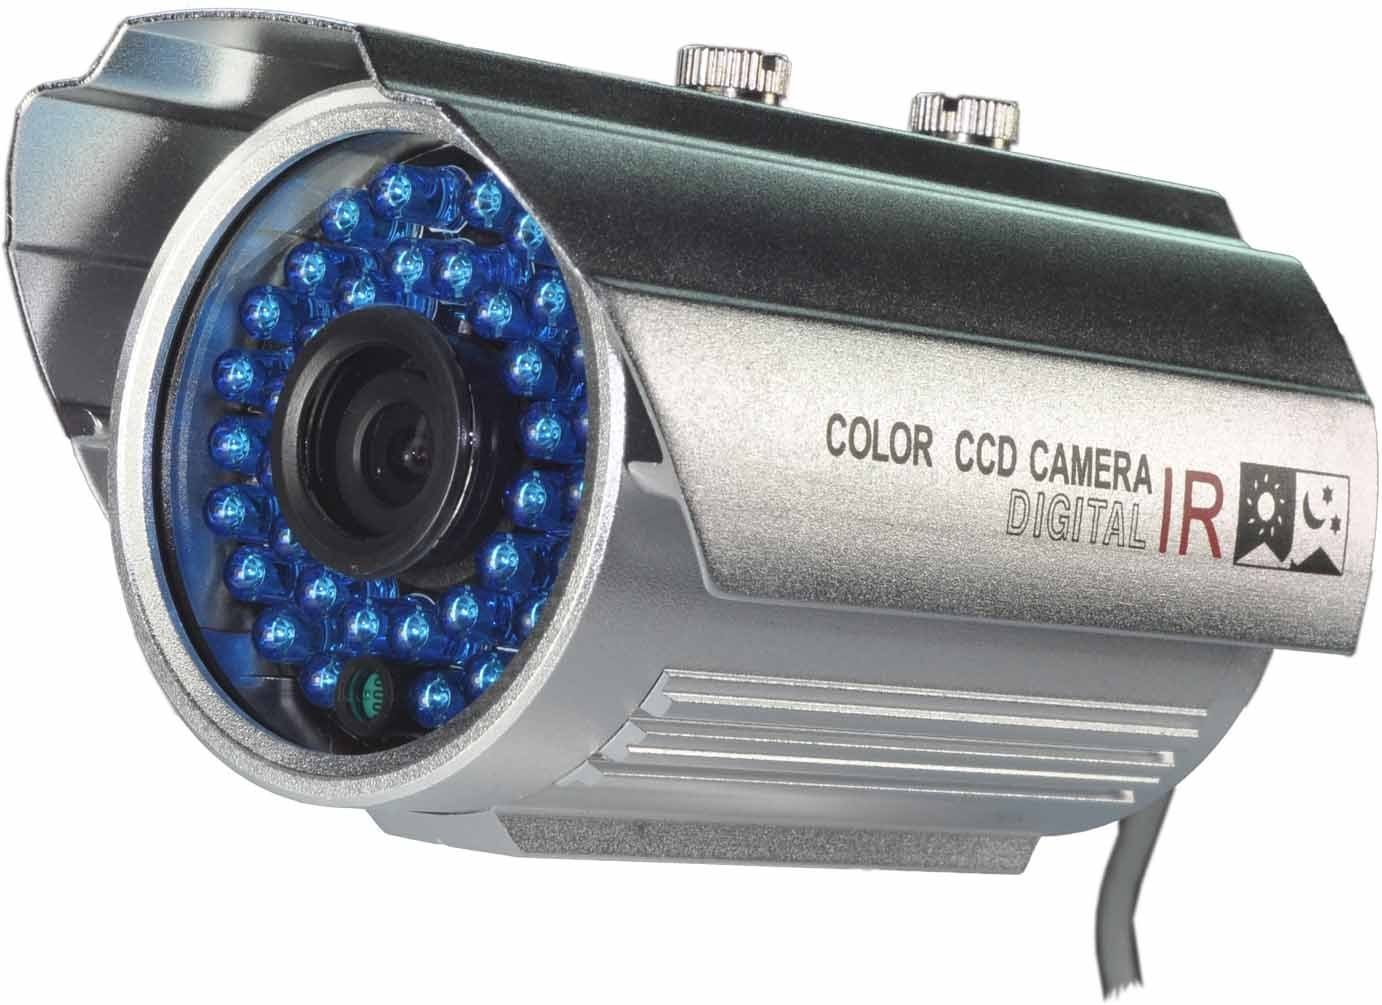 Infrared CCTV Camera 960TVL Waterproof Night Vision Security Camera IR 36 LEDs 3.6mm Lens Wide Angle Home Surveillance System [並行輸入品] B01KBR6FSM